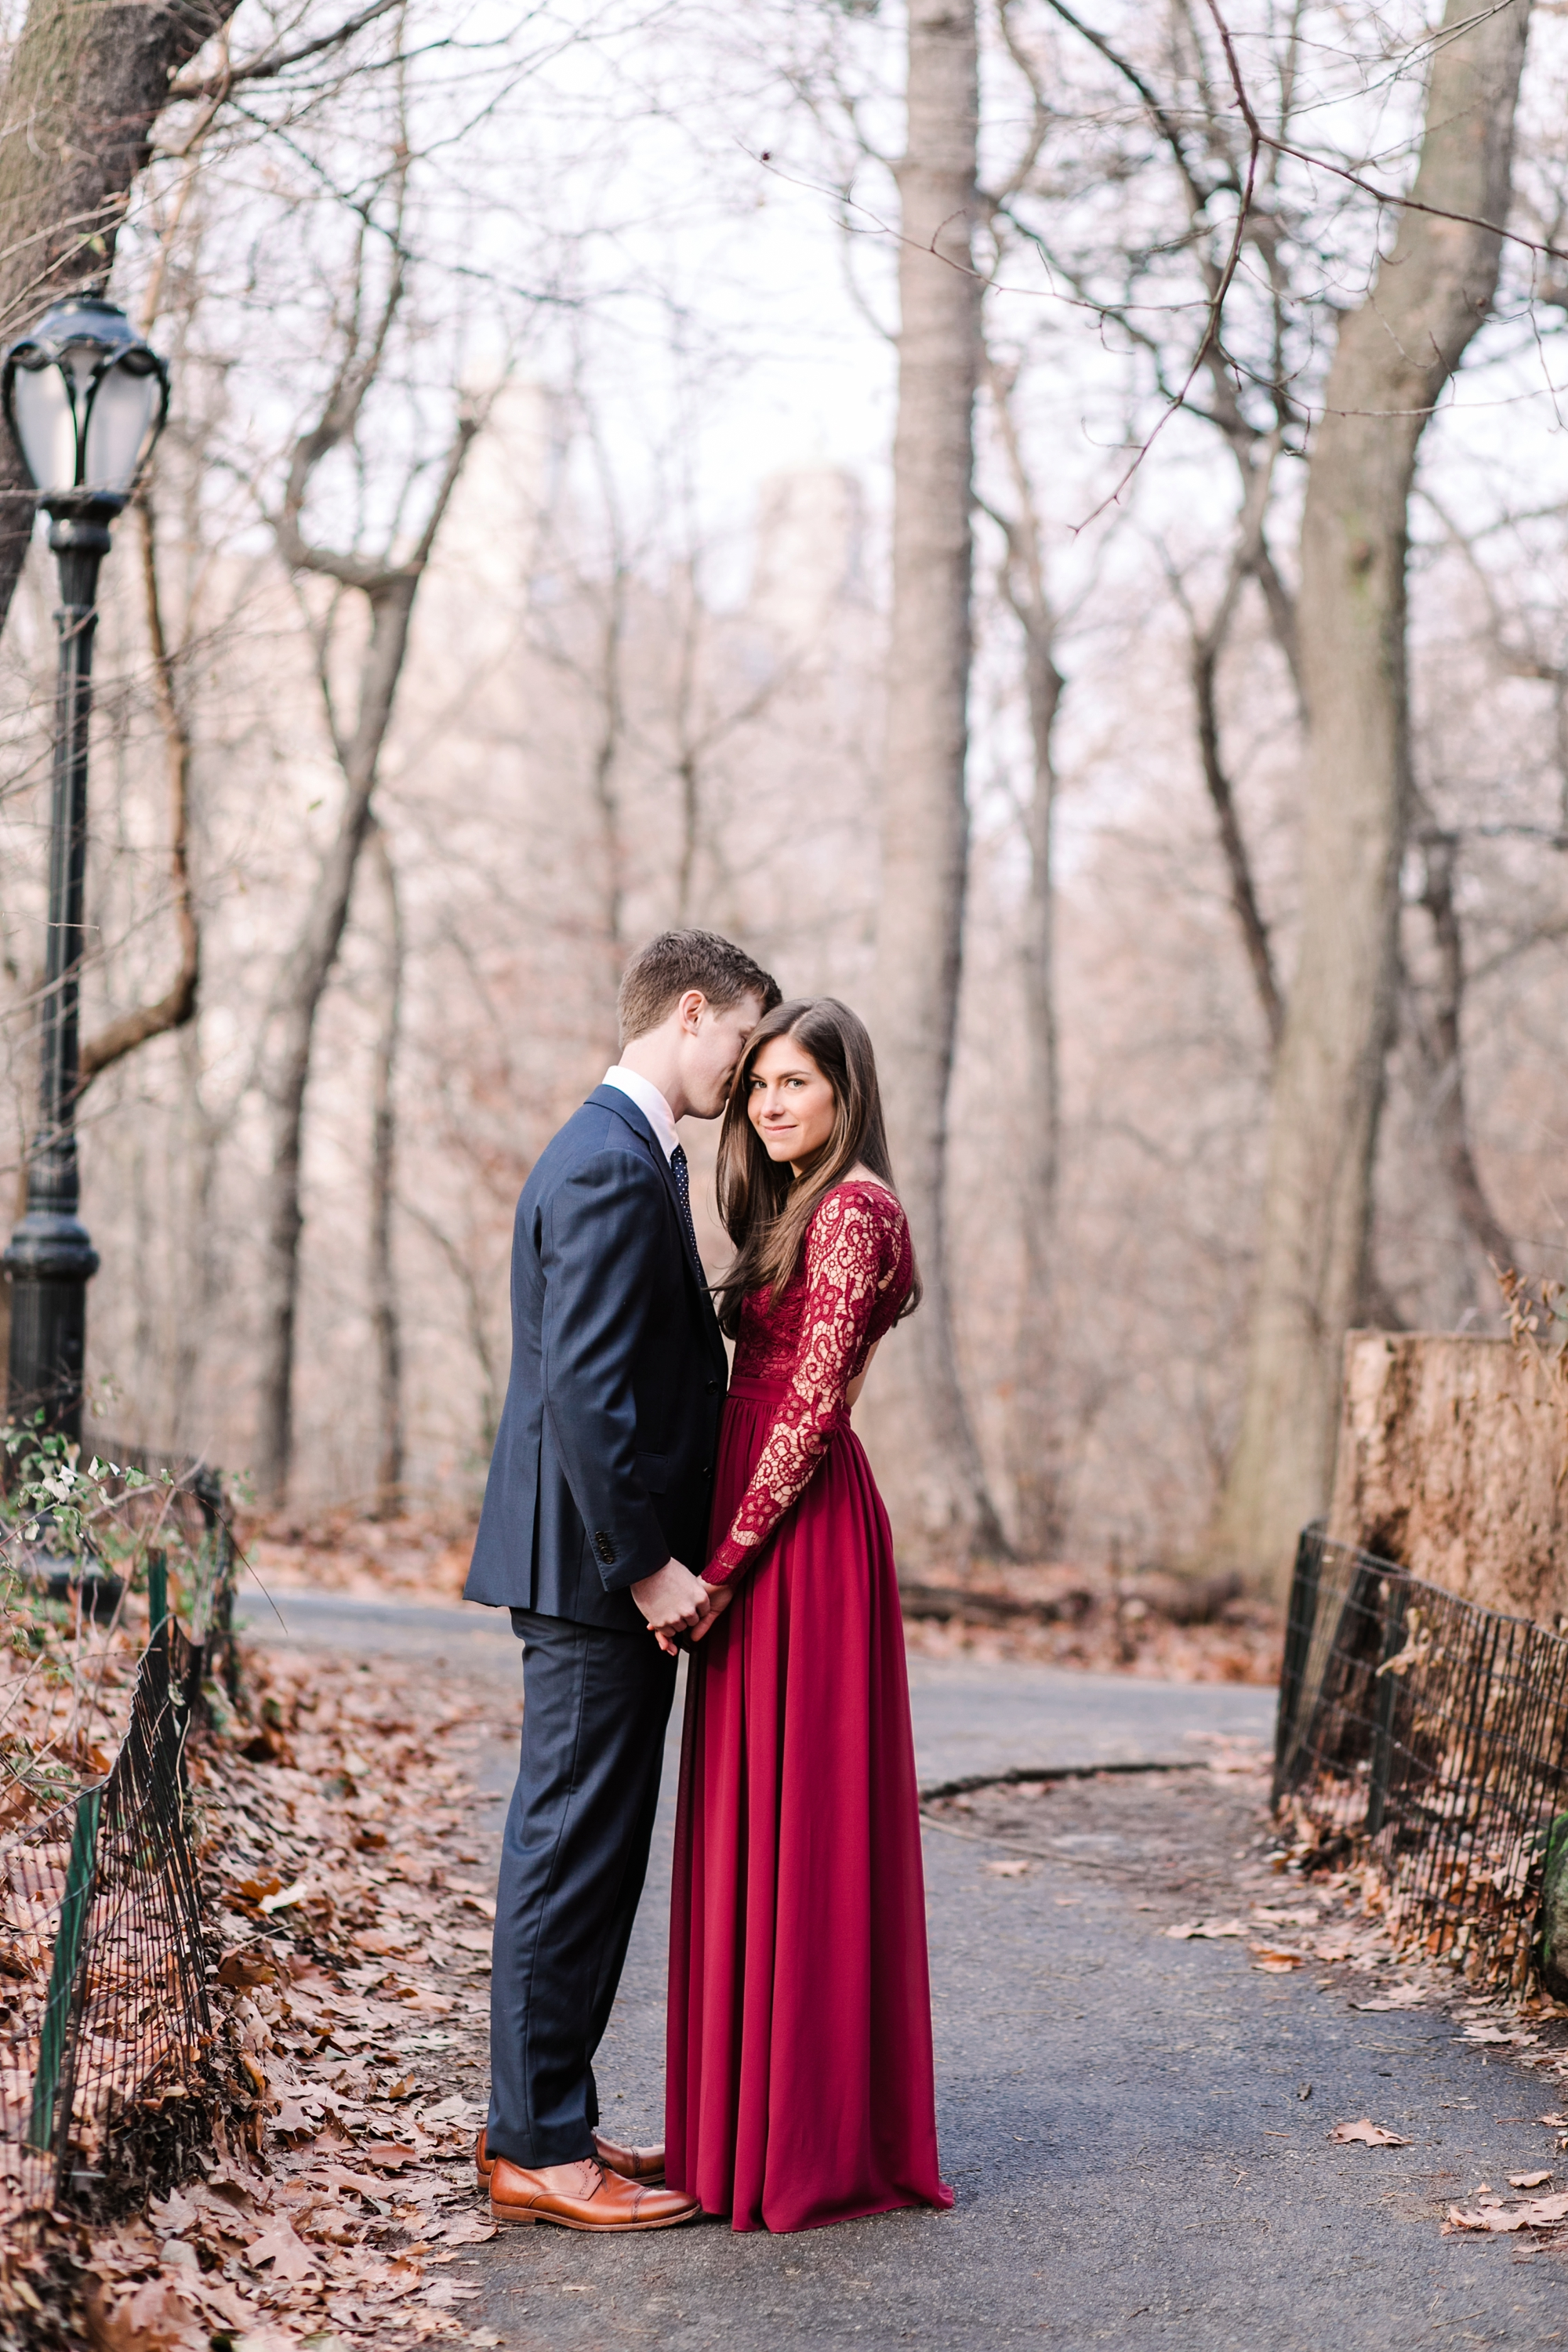 Natalie Broach Photography New York City Engagement Session | Central Park Engagement Session | Destination Photographer | New York Wedding Photographer | Central Park Photoshoot | New York Winter Photoshoot